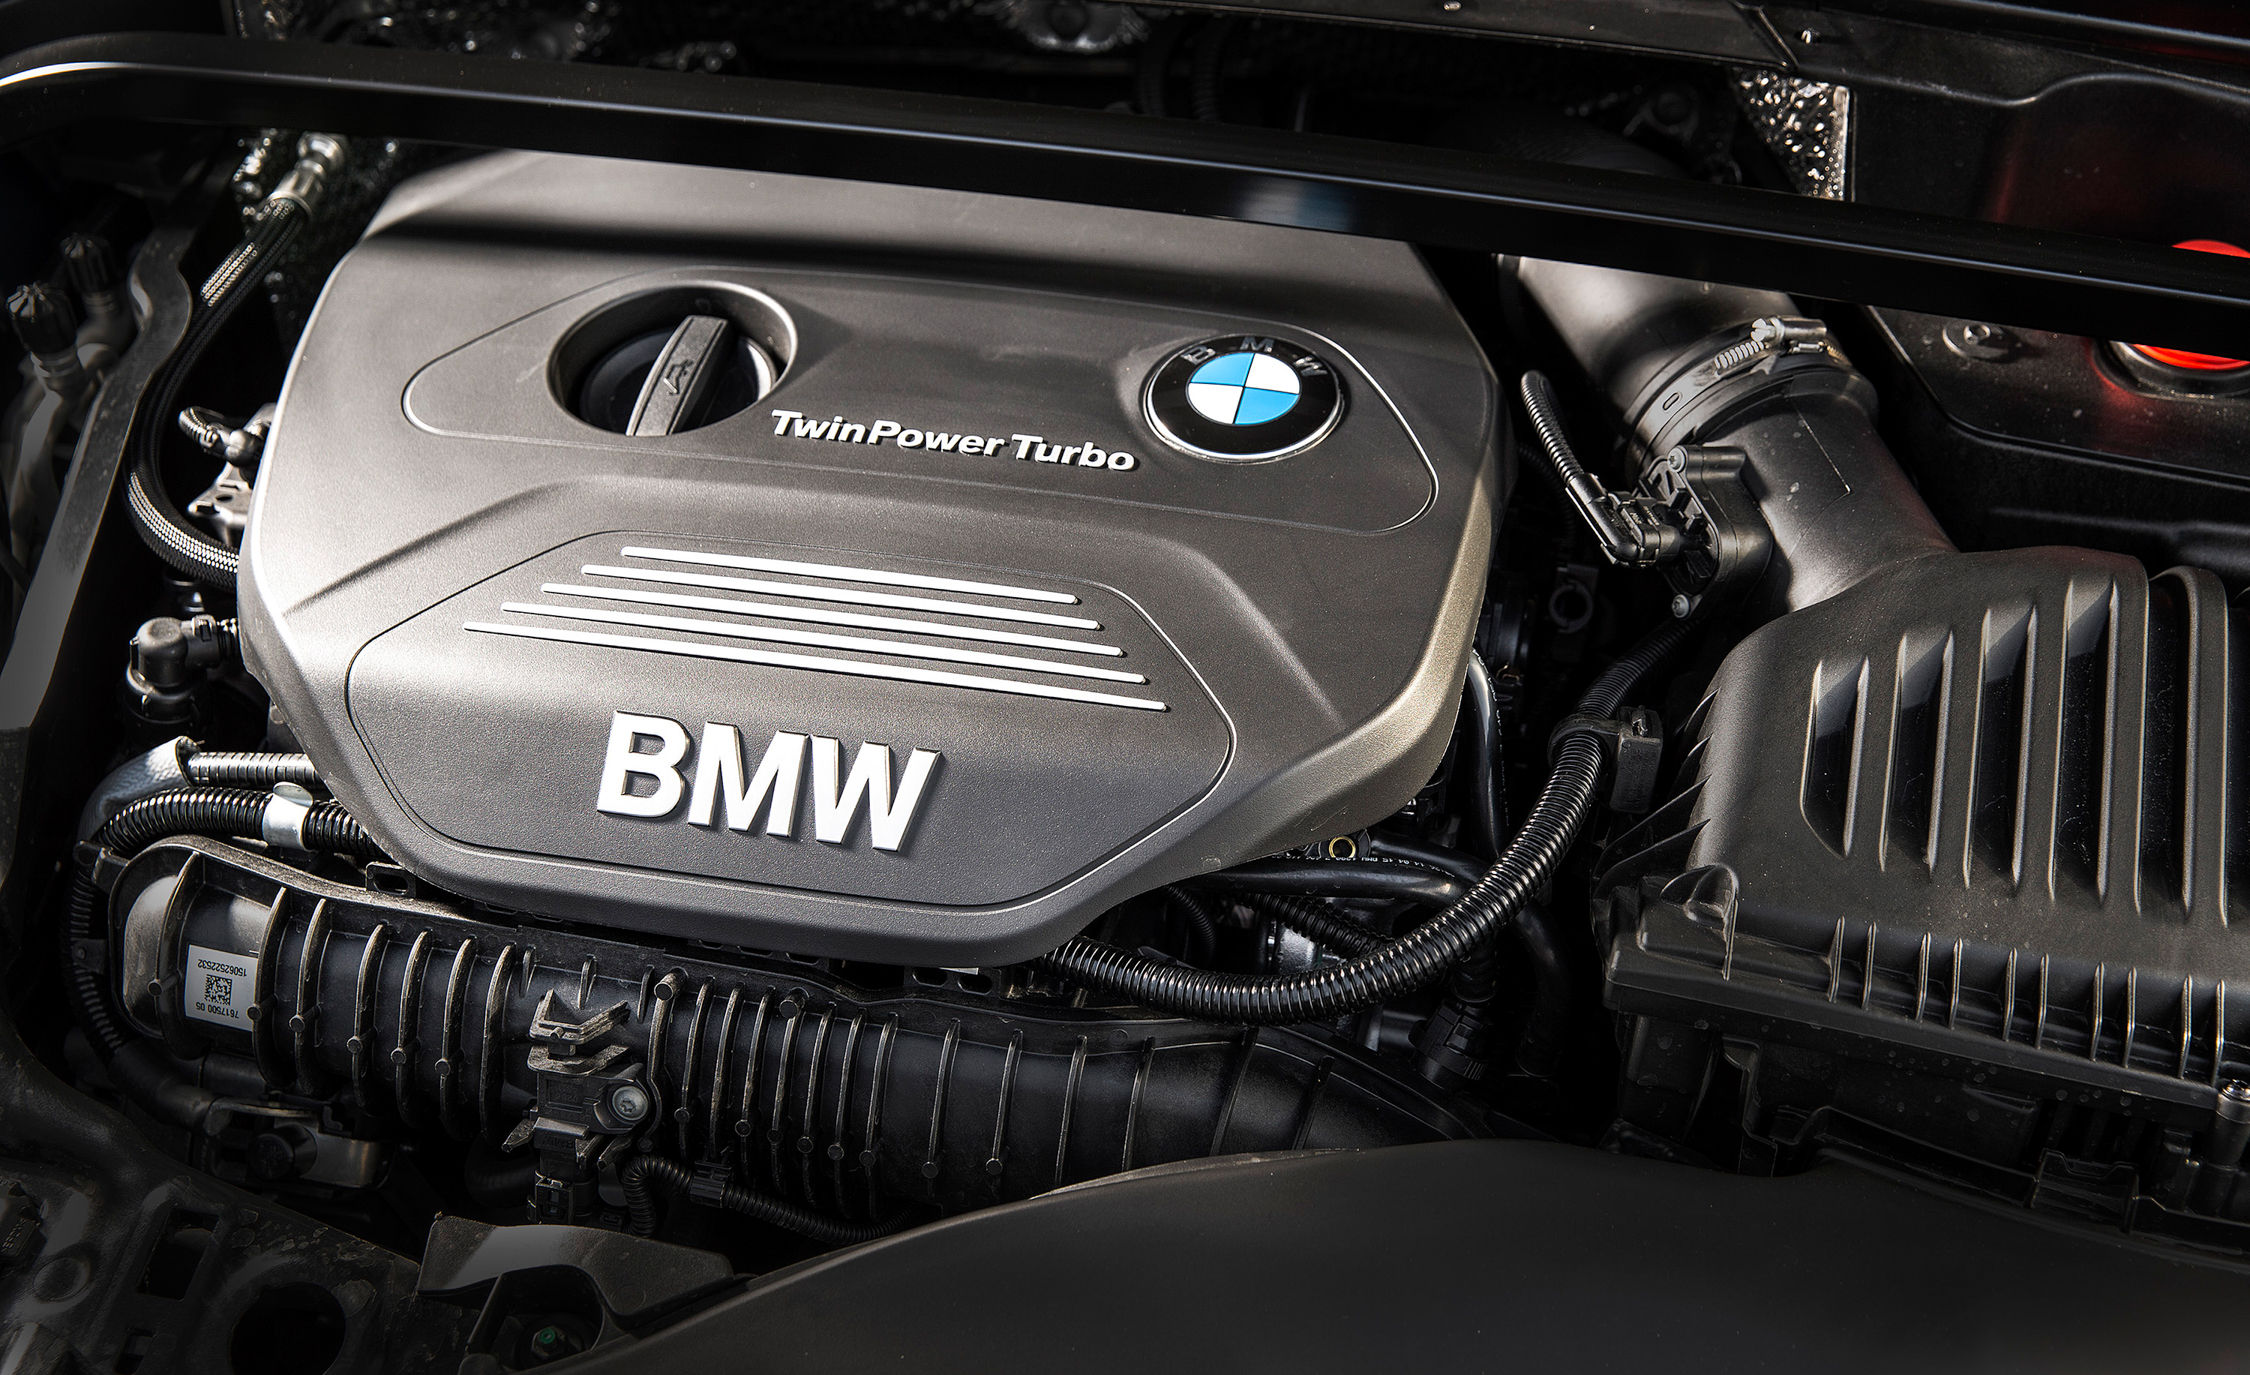 2016 BMW X1 XDrive28i View Engine (Photo 36 of 36)